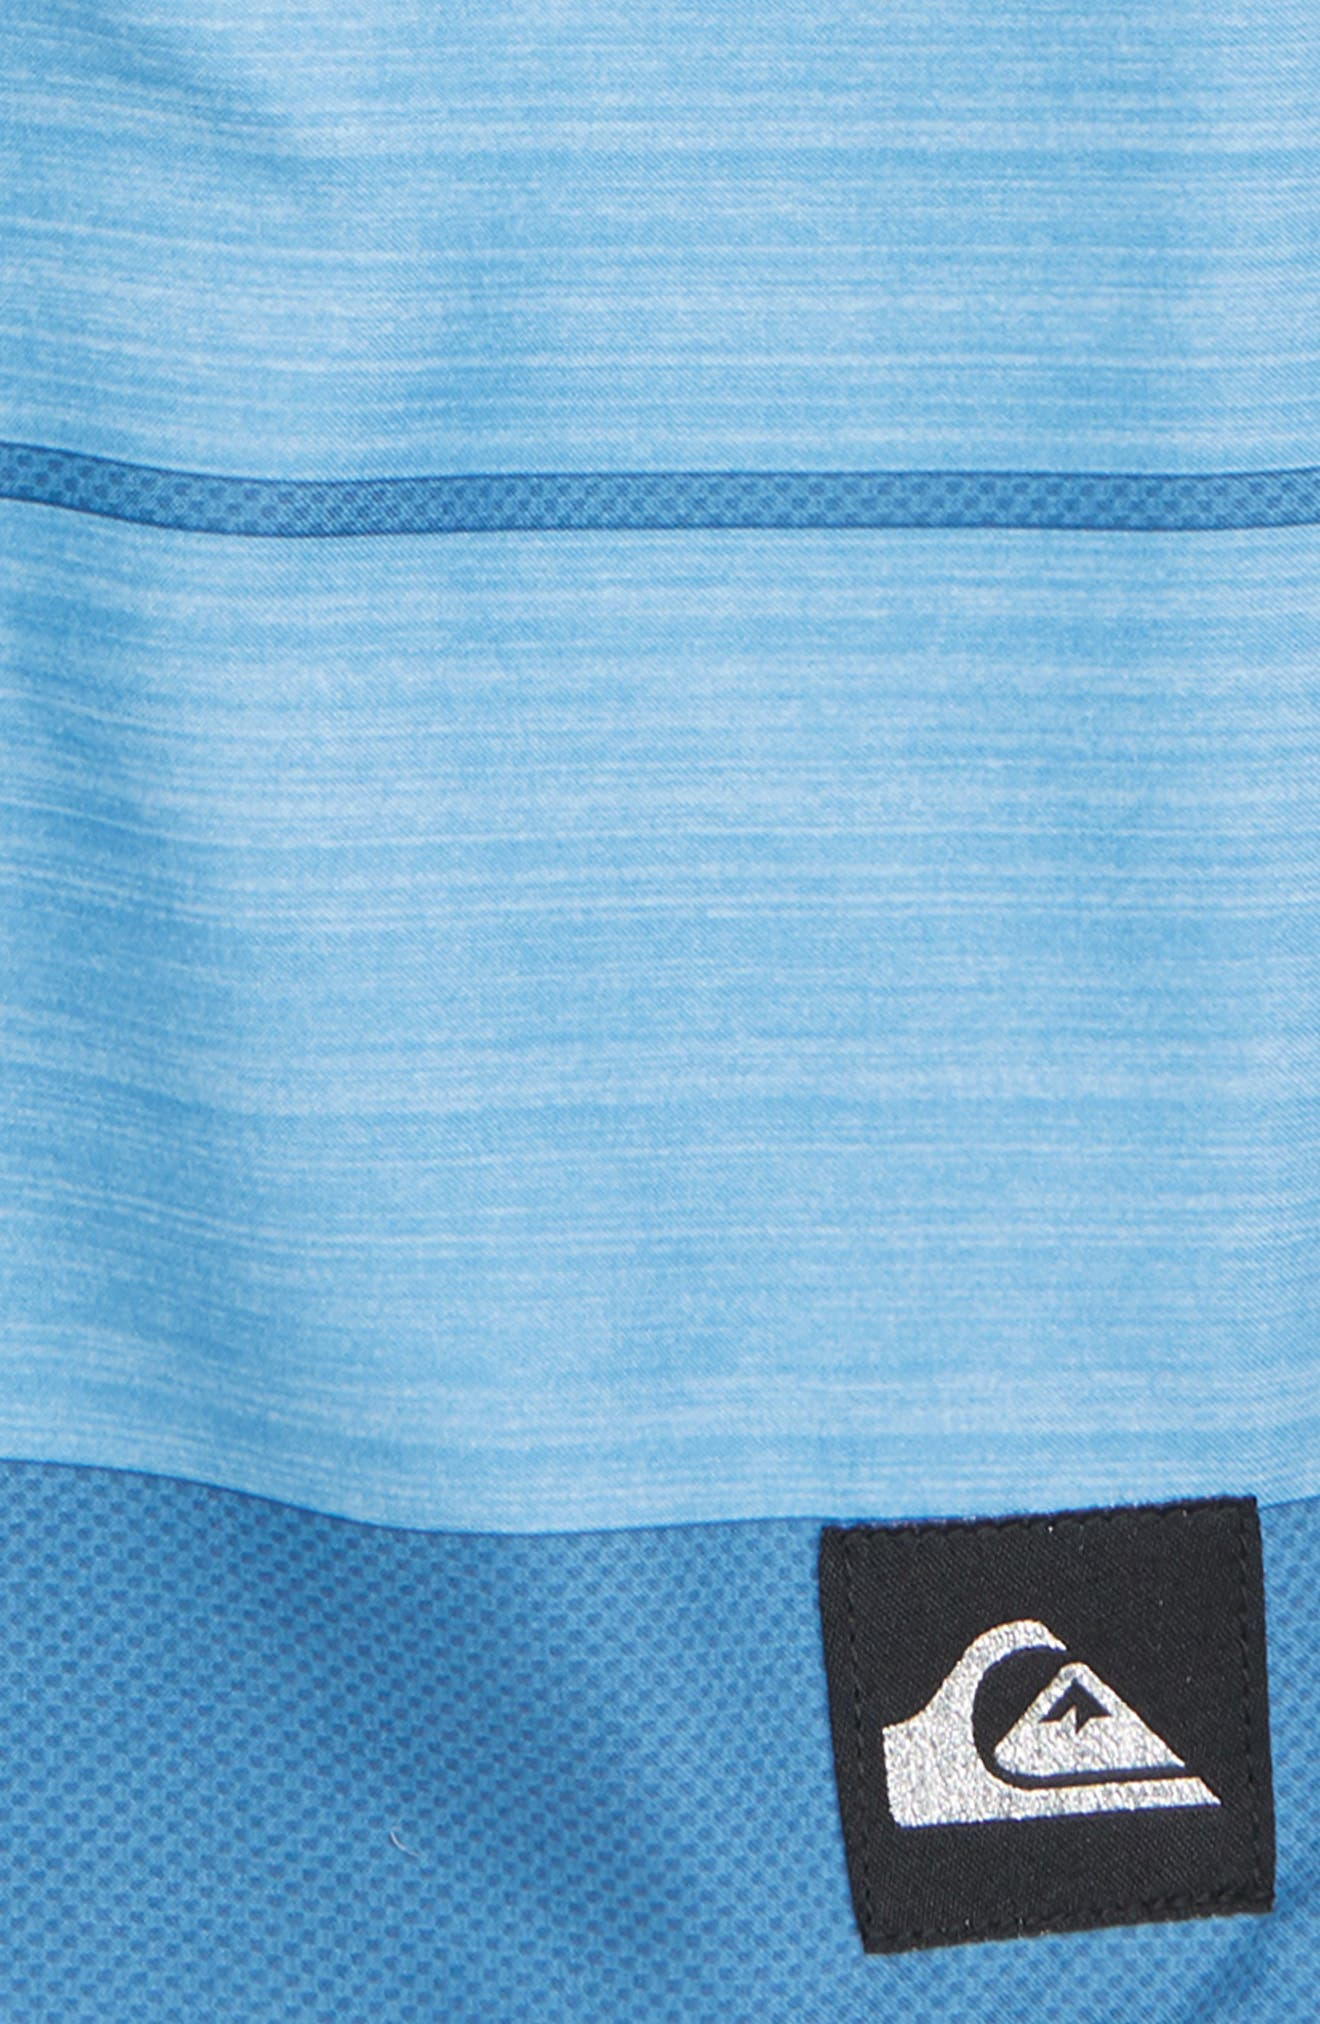 Slab Island Board Shorts,                             Alternate thumbnail 2, color,                             MEDIEVEL BLUE